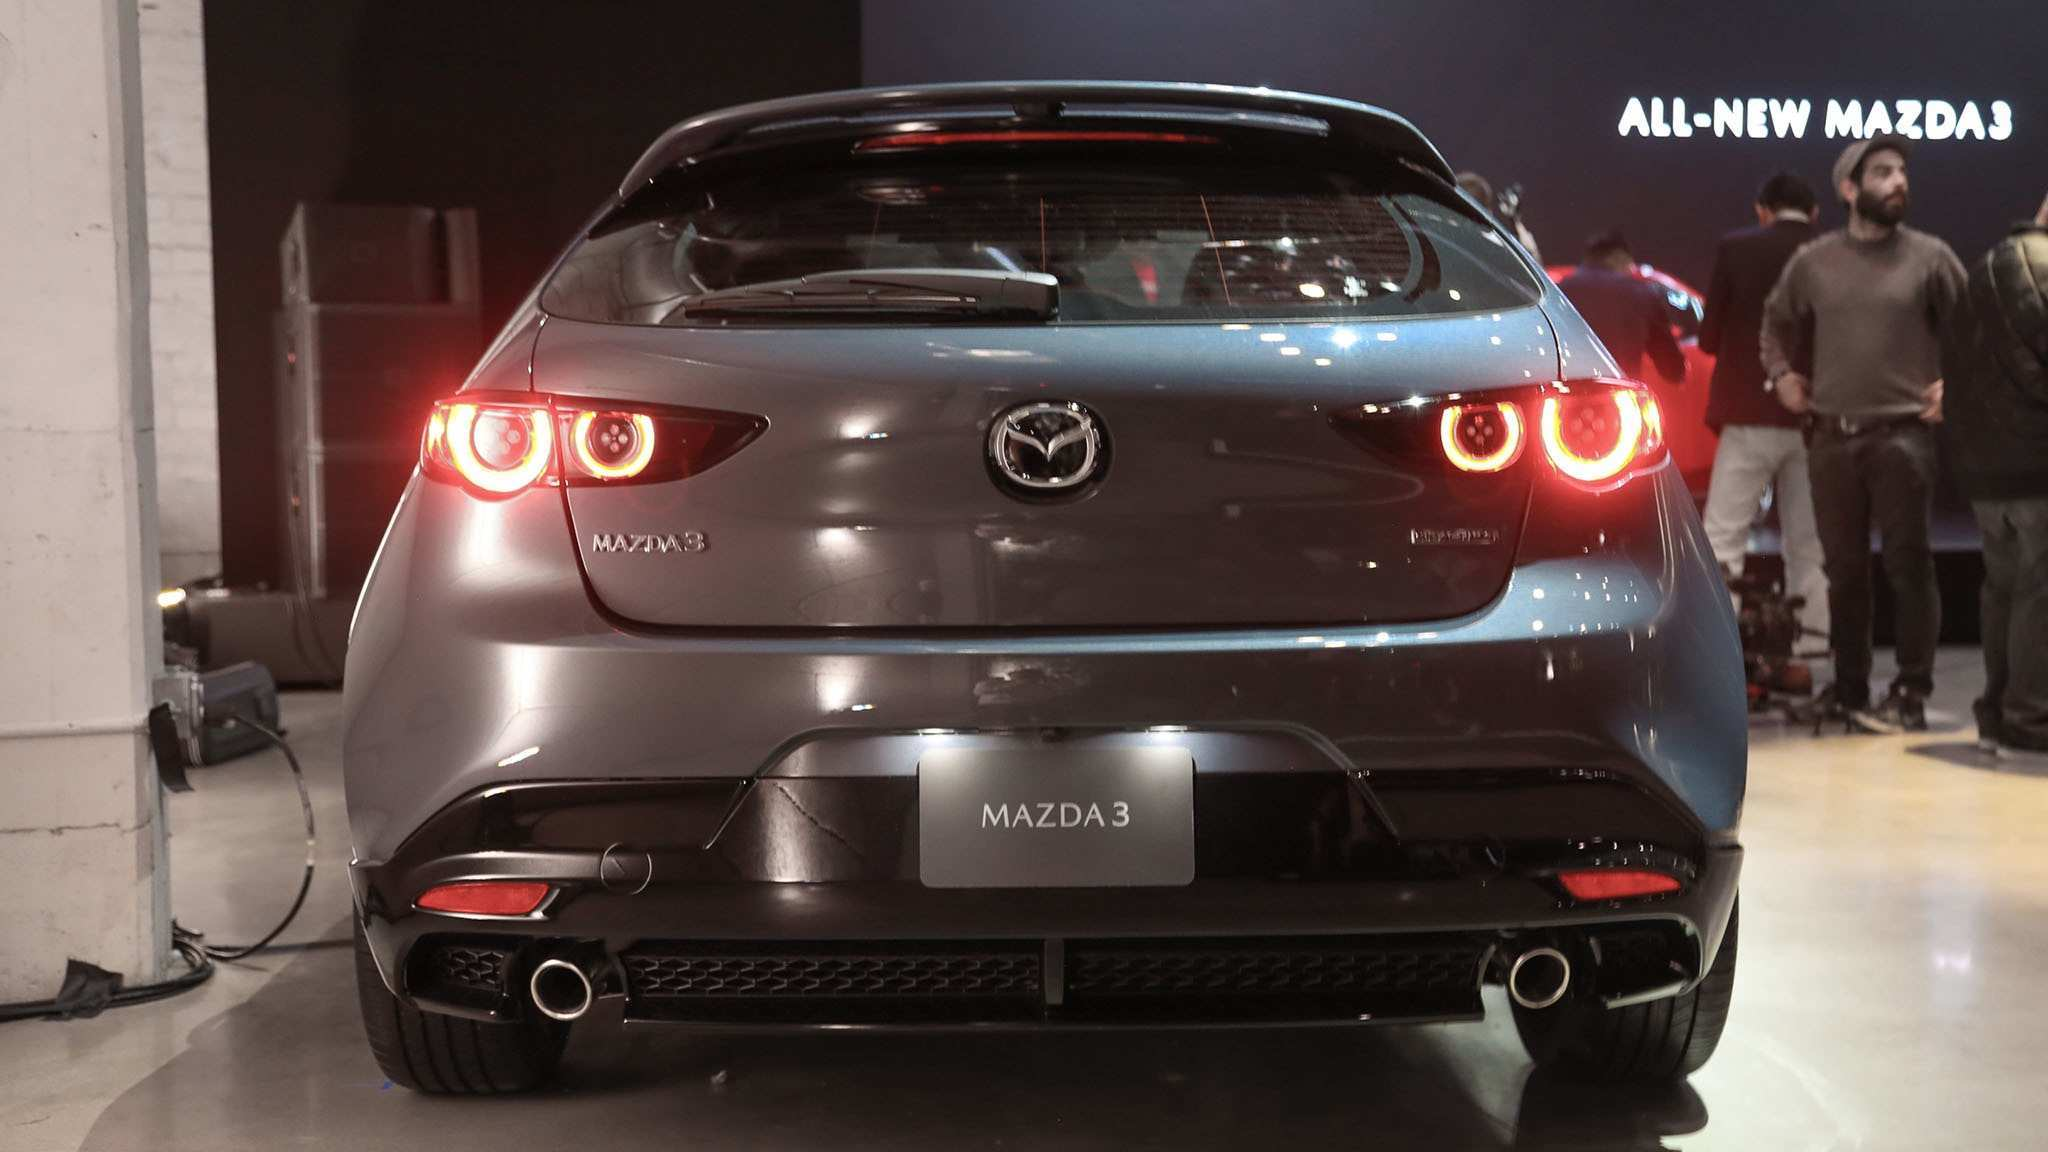 91 New The Mazda 3 2019 Debut Exterior Redesign and Concept for The Mazda 3 2019 Debut Exterior